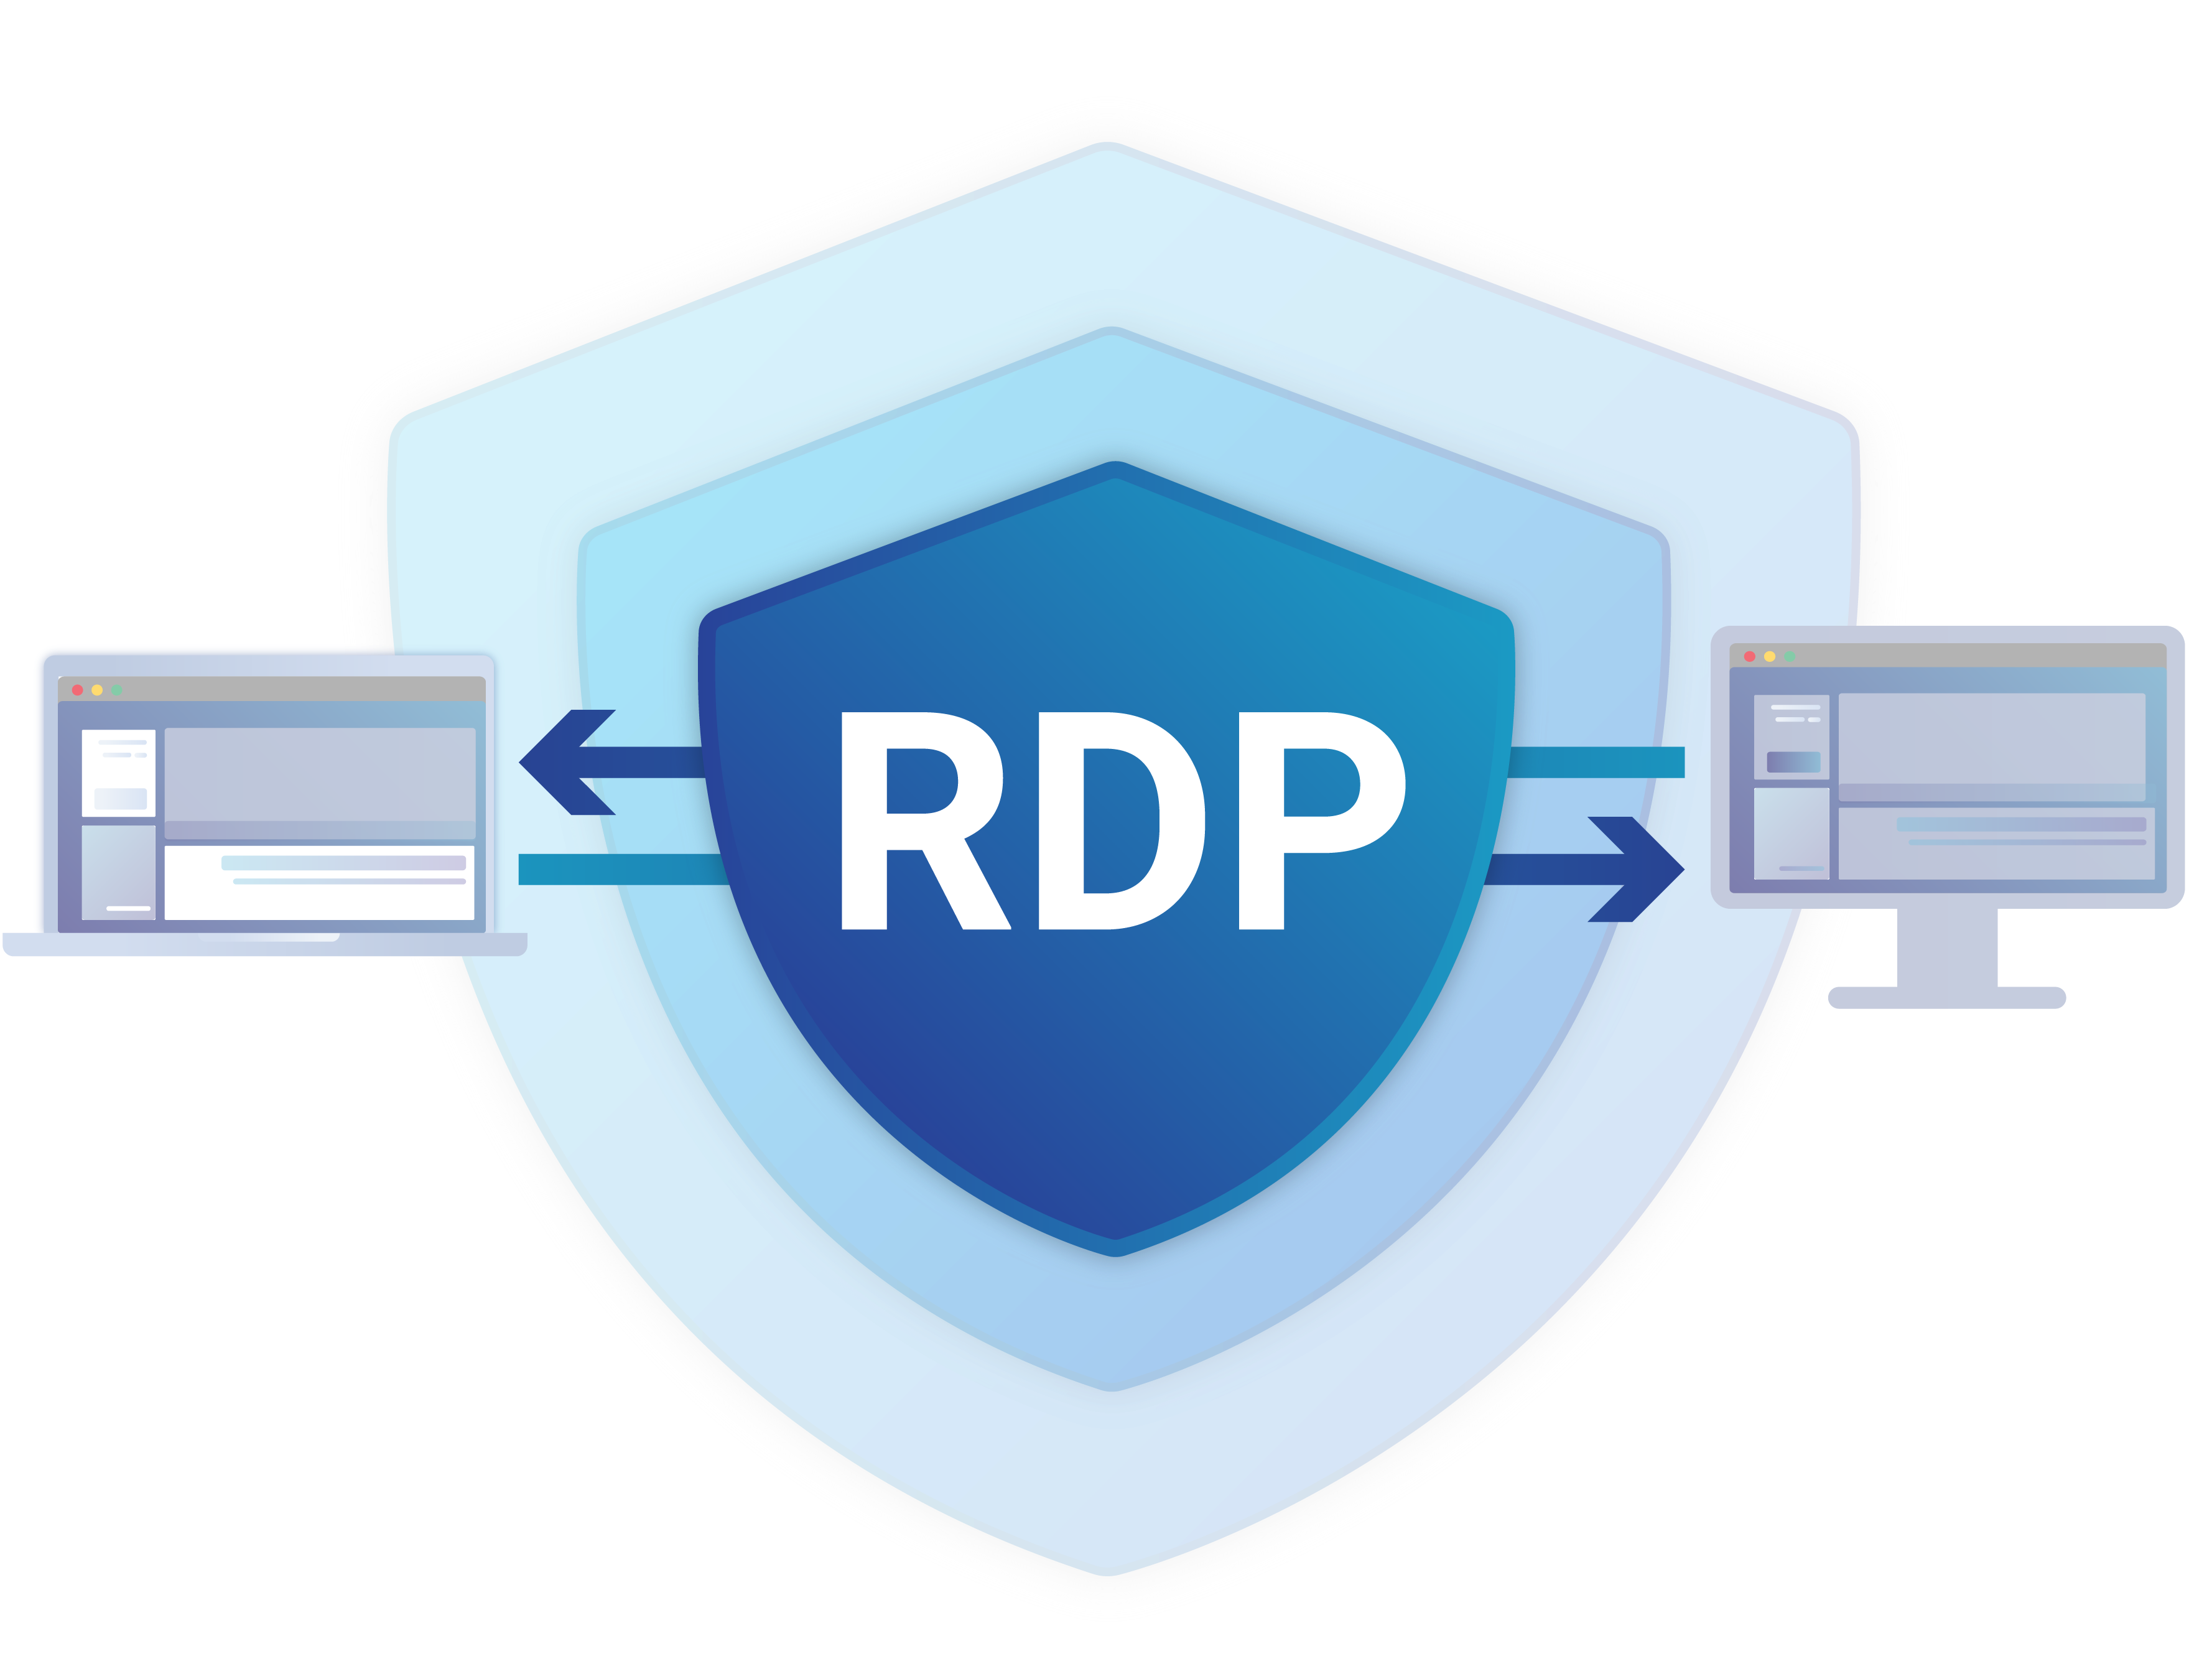 Connect to RDP with domain